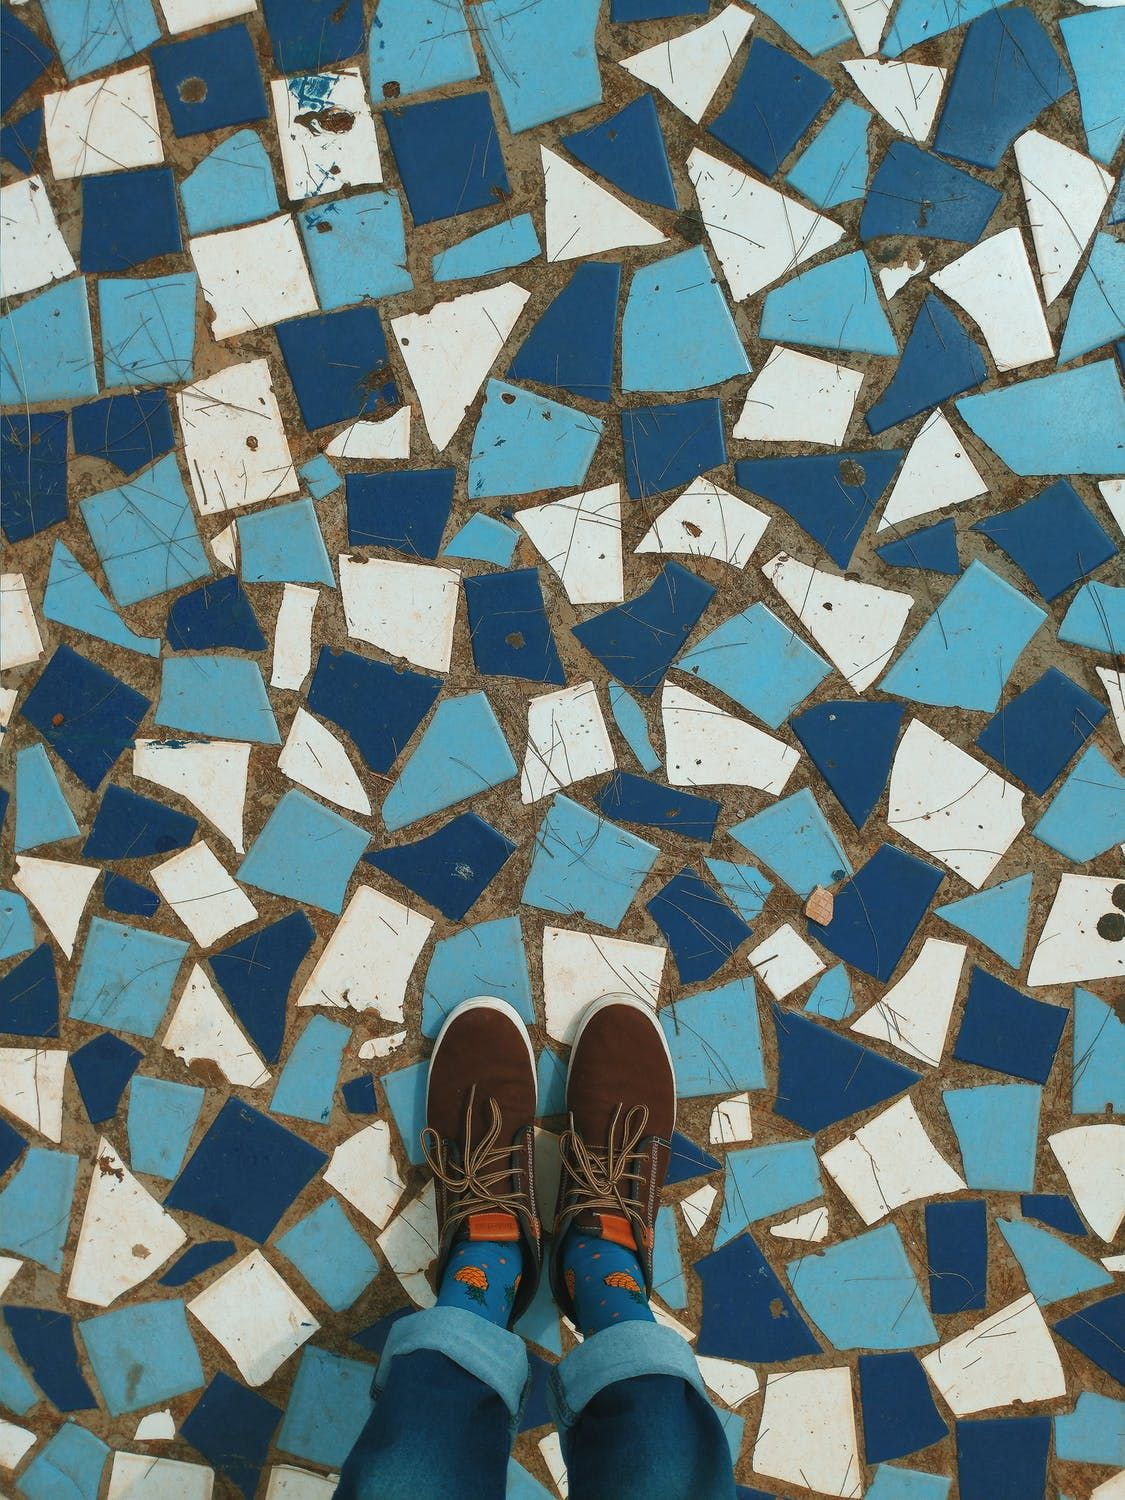 Two feet stepping on a blue and white mosaic